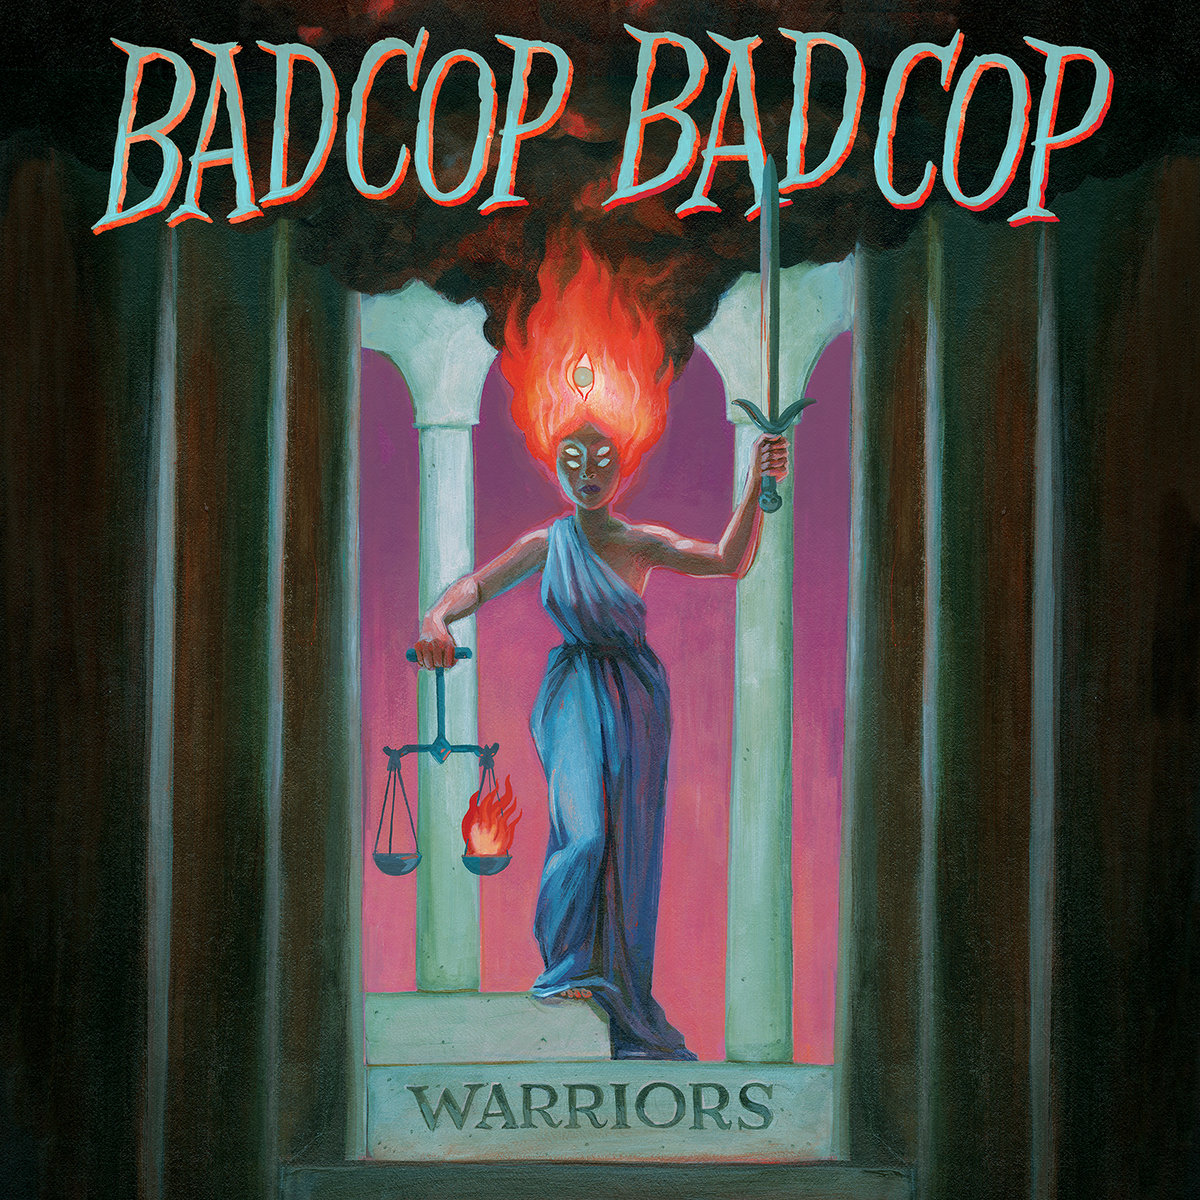 Bad Cop/Bad Cop - Warriors (Album Review)